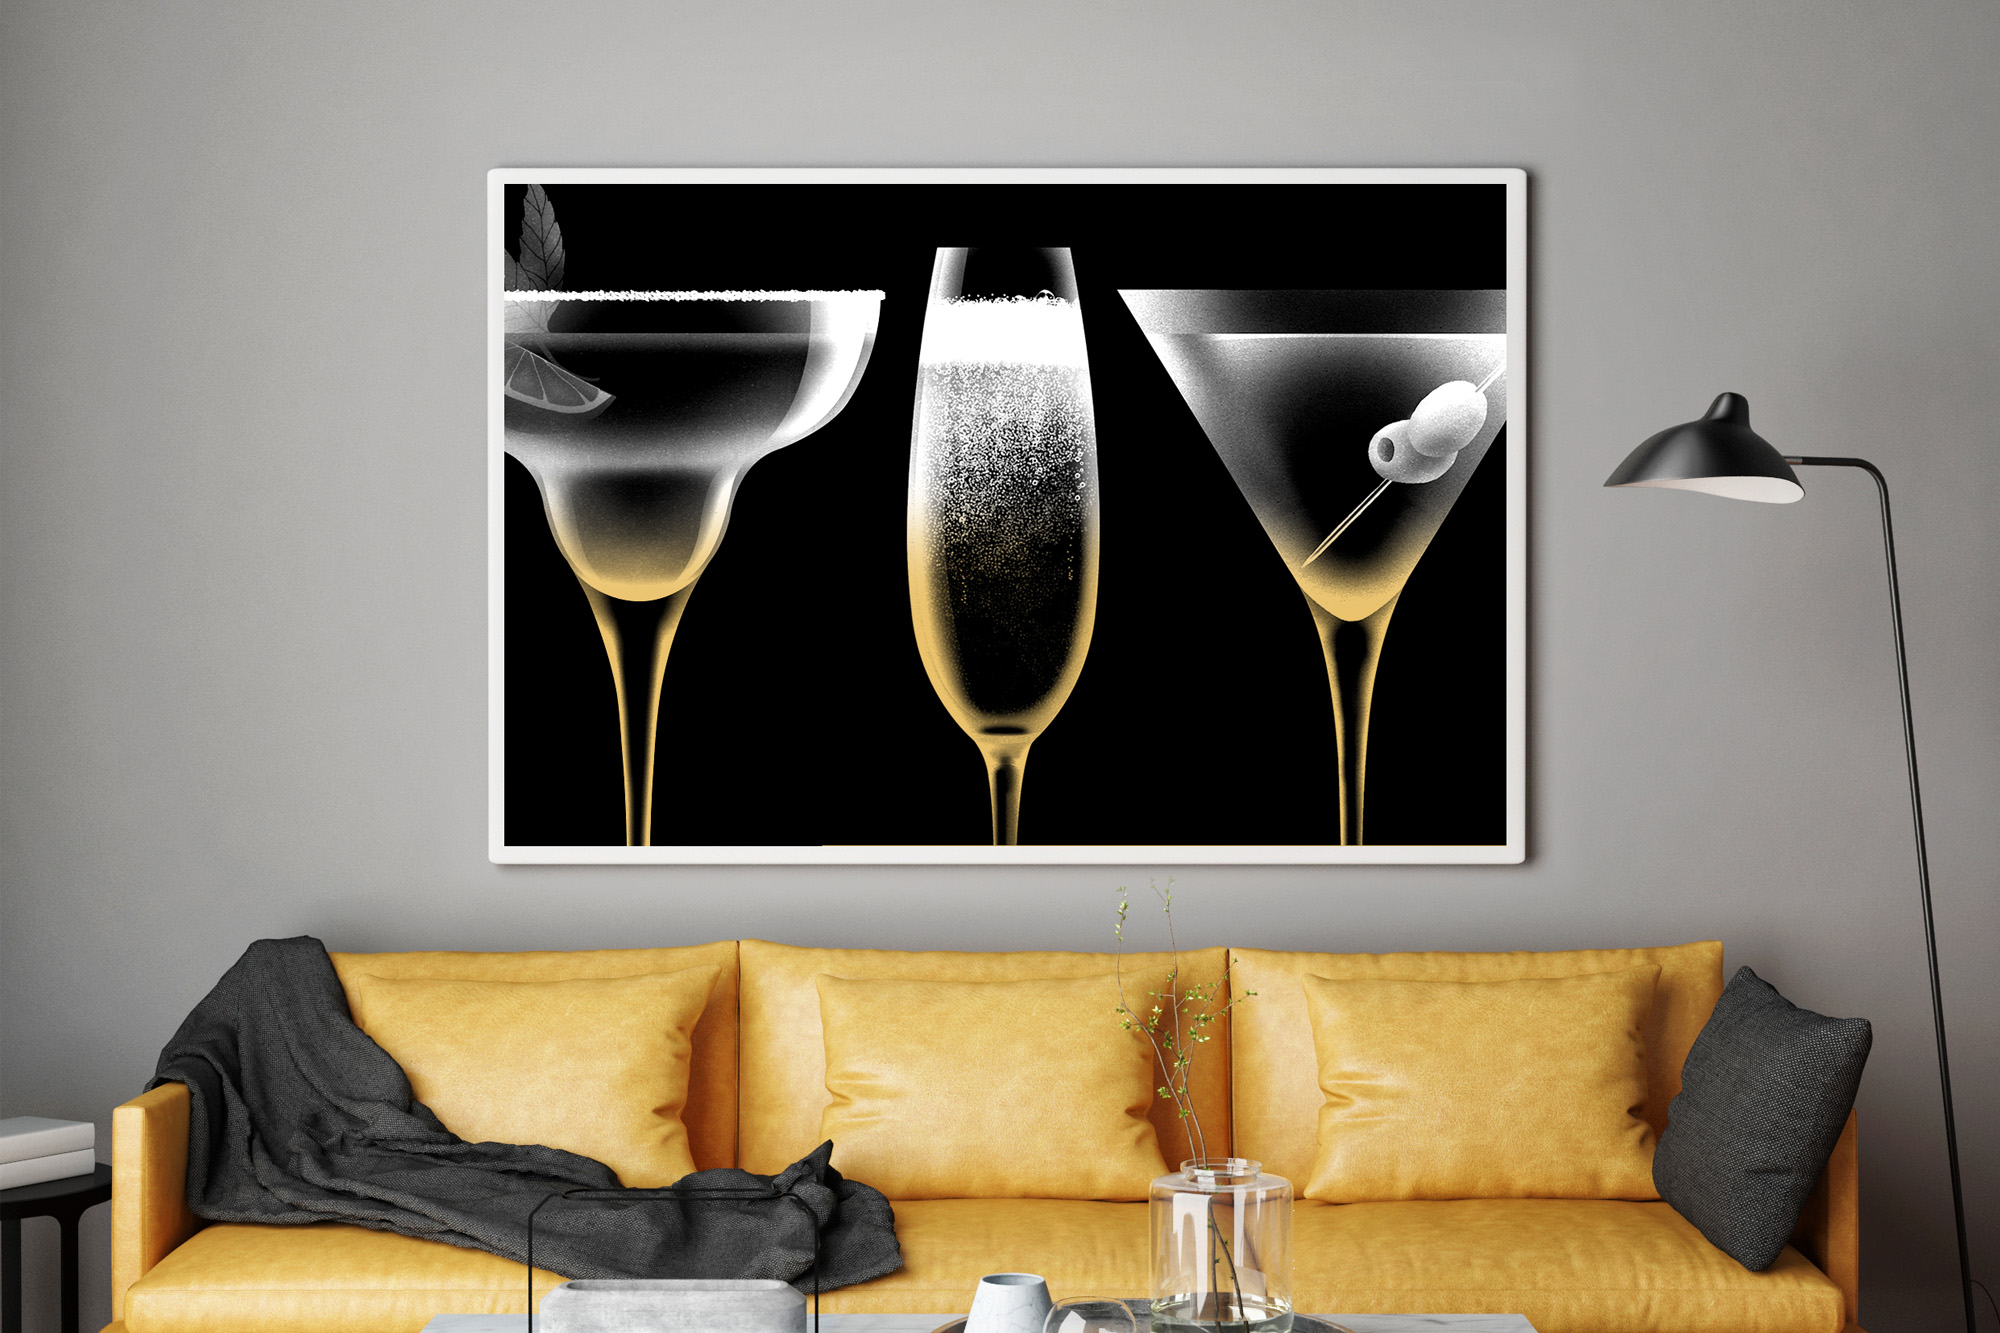 nick-purser-ikon-drink-illustration-g